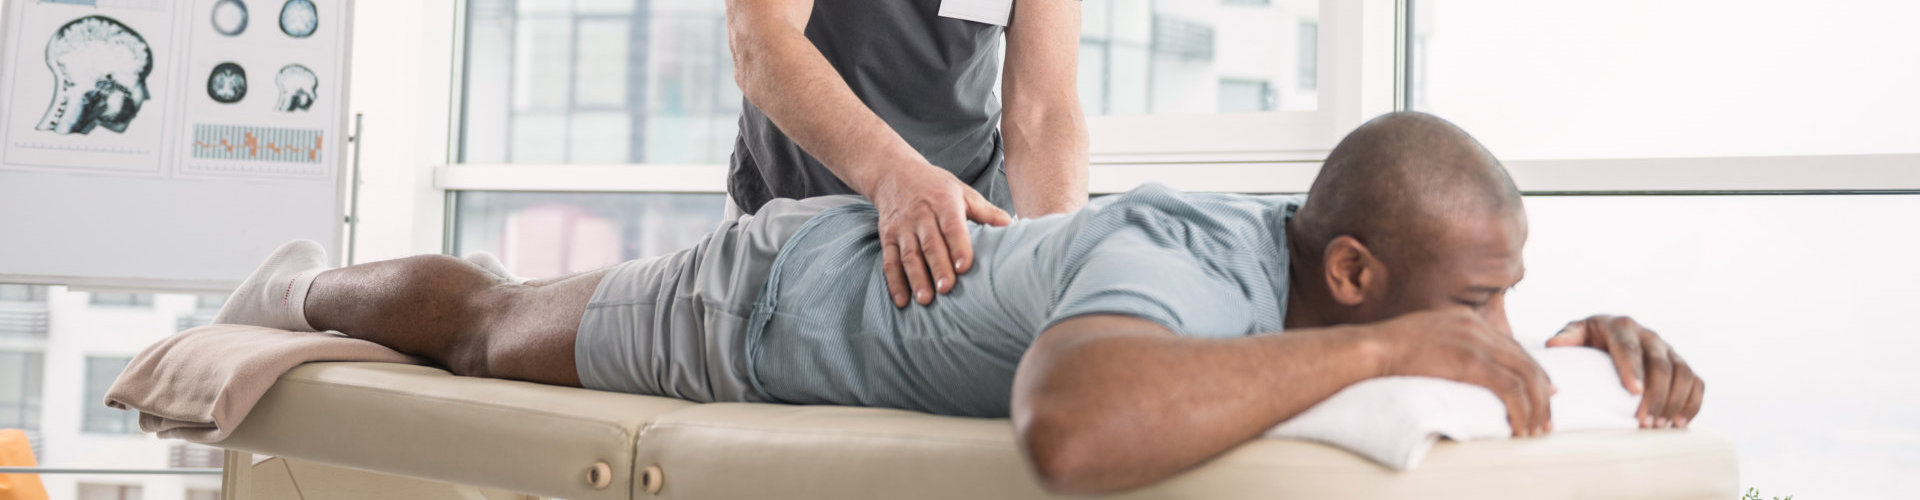 man availing chiropractic treatment